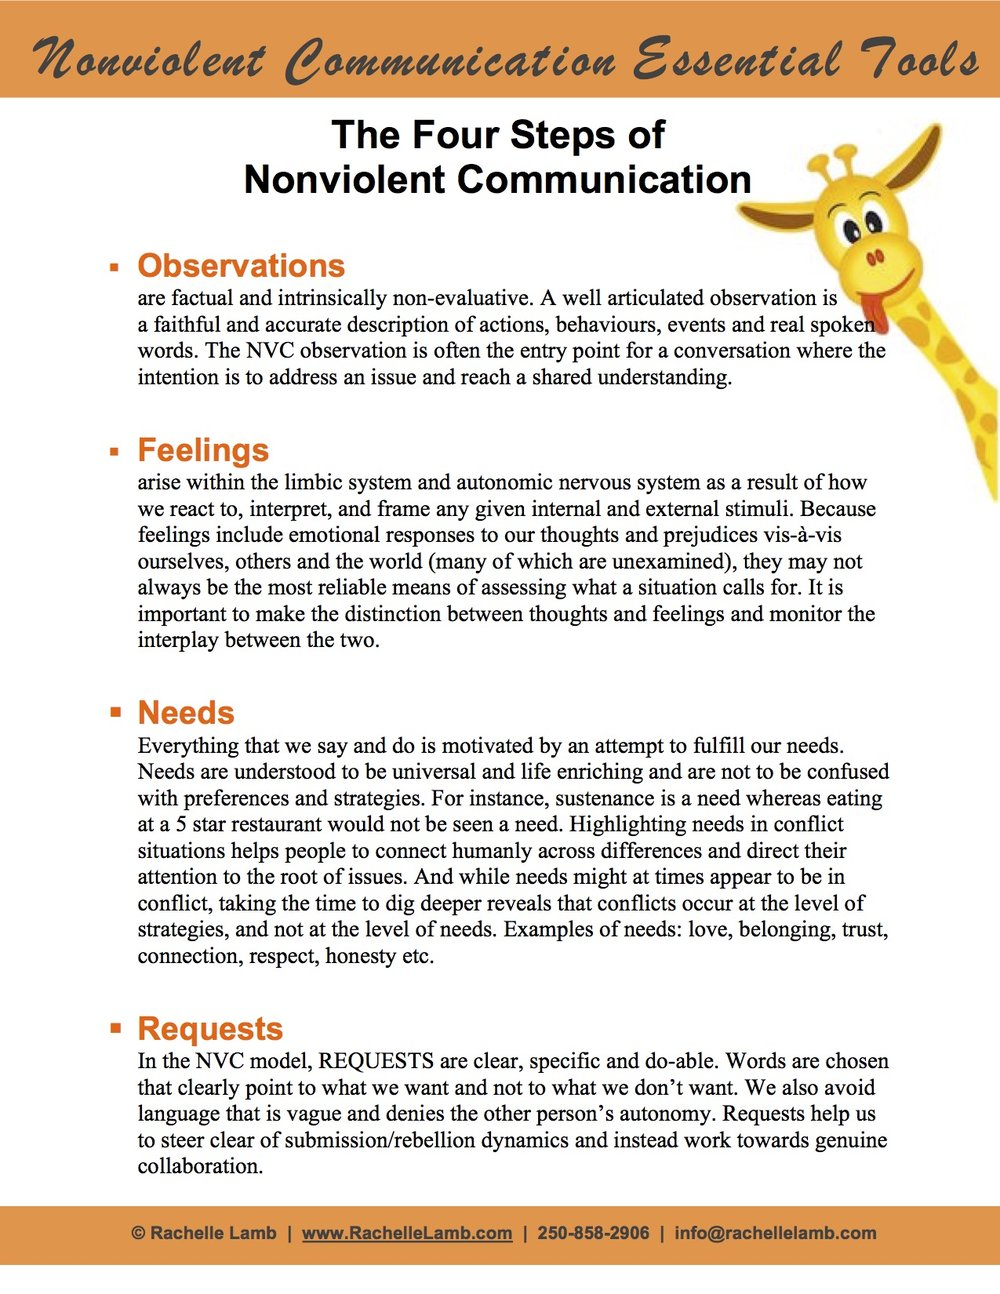 Nonviolent Communication Tools OFNR